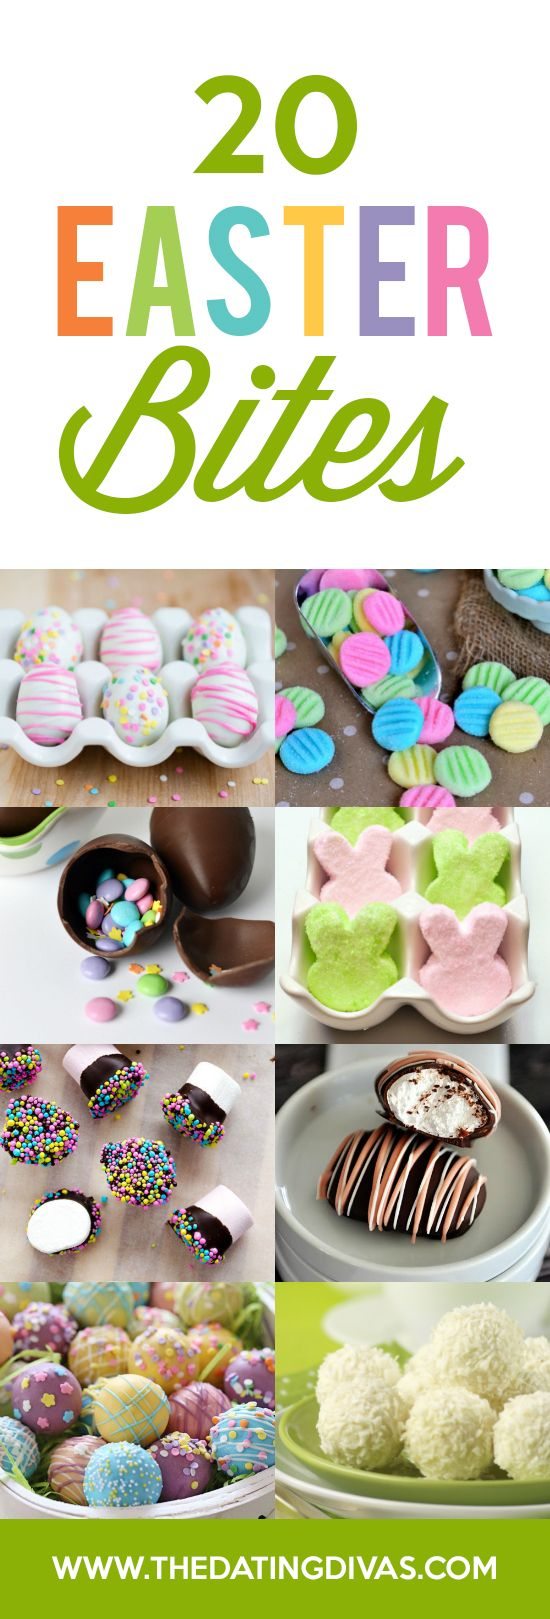 Easter Treats and Bites- so many cute easter goodie ideas to do with the kids